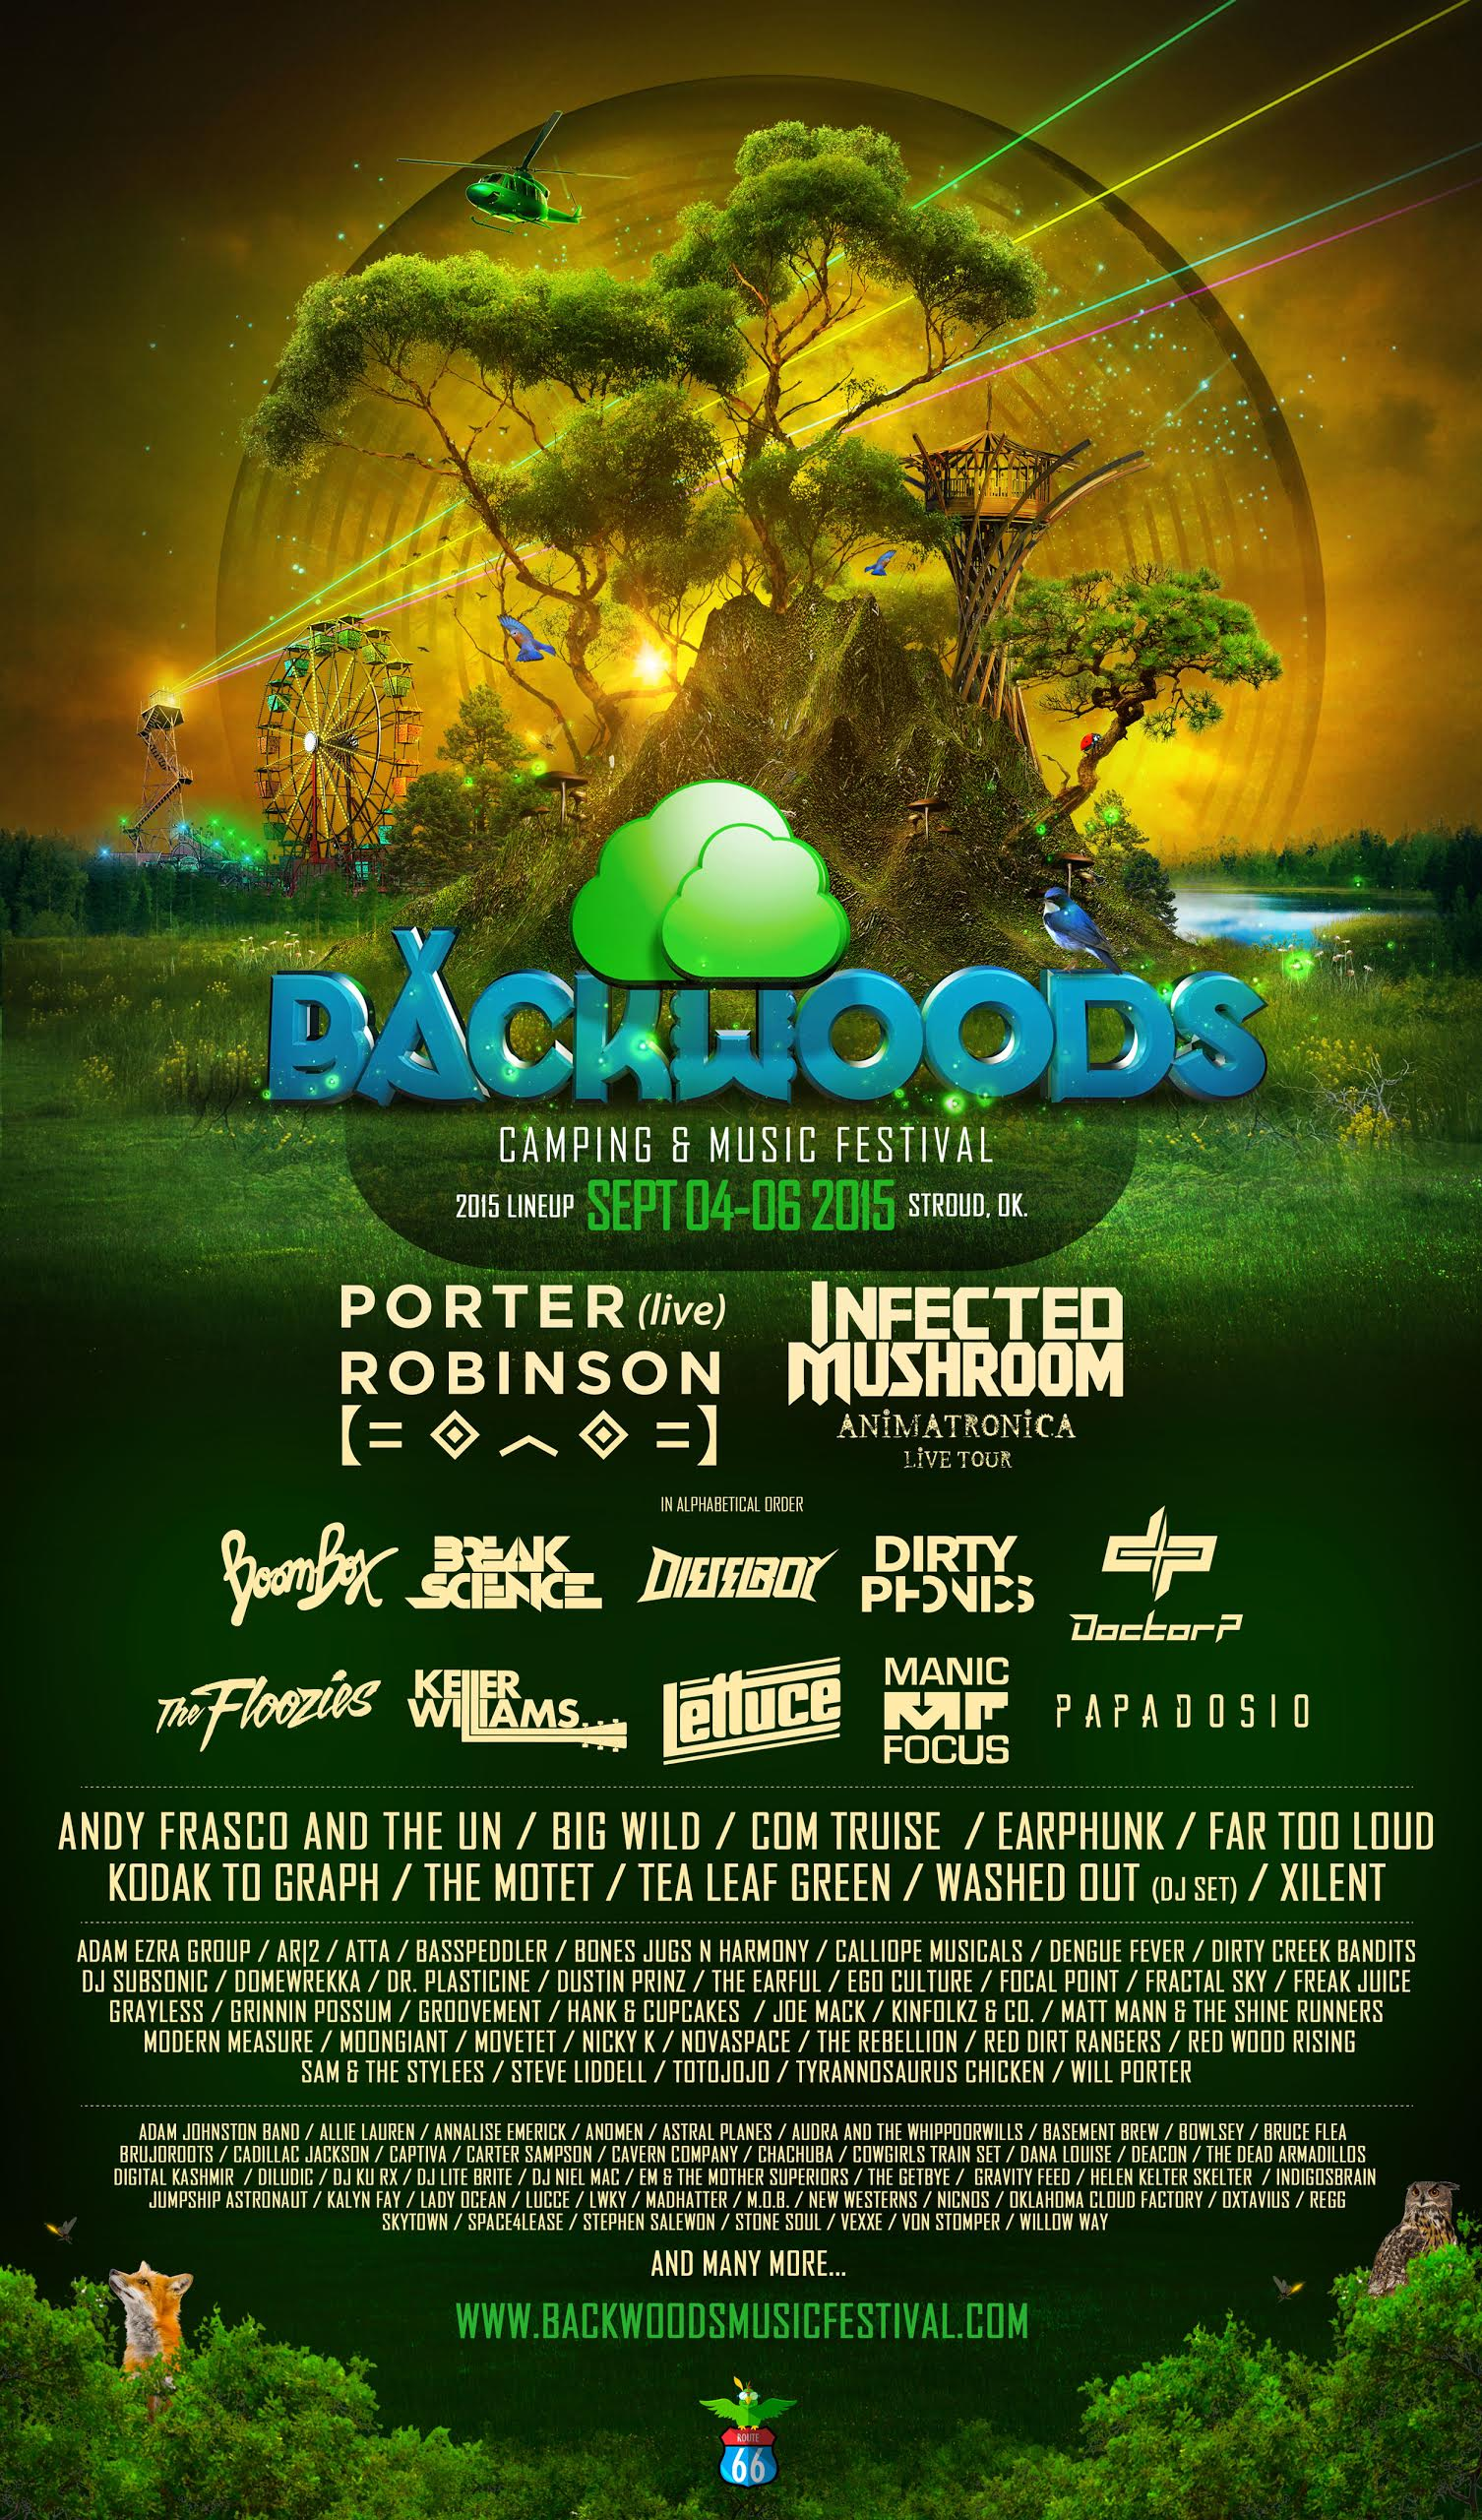 FINAL-BACKWOODS-2-28-15-LINEUP-ANNOUNCEMENT-2OF3